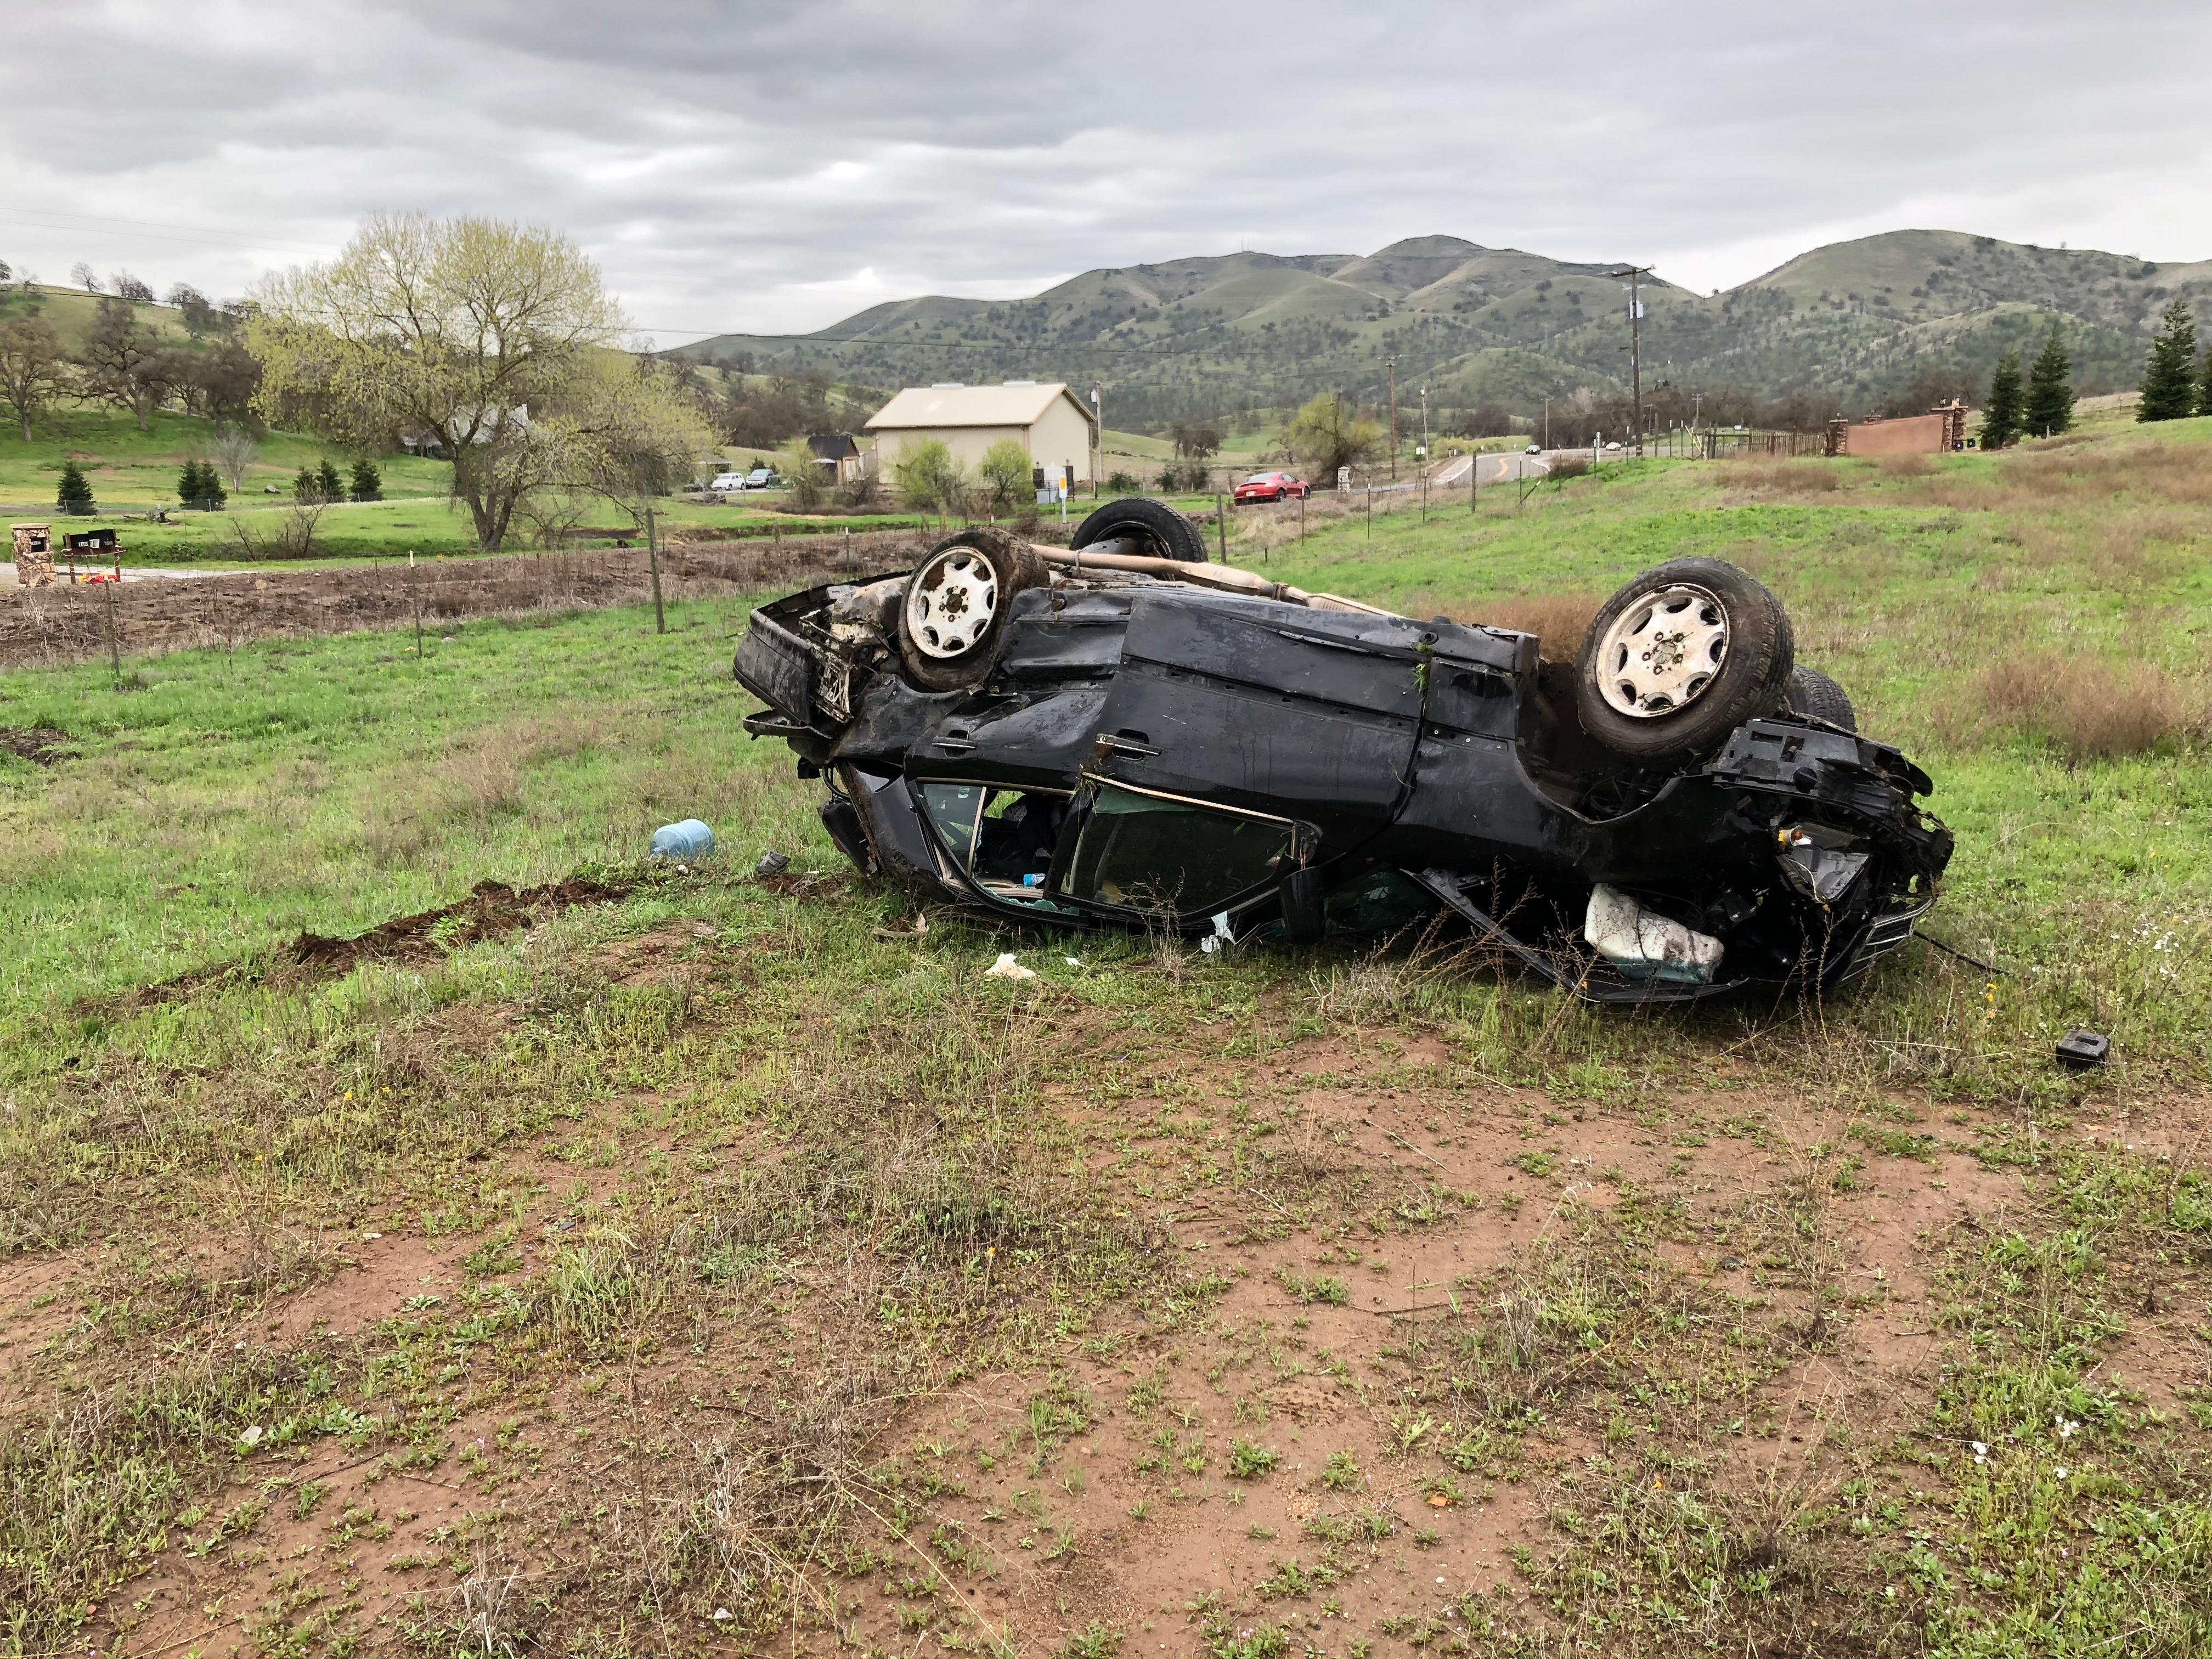 <p>Police say the man was driving on Auberry Road when he passed a big rig going the opposite direction. The wind pushed the car off the road causing the driver to lose control and roll several times into a field.</p>